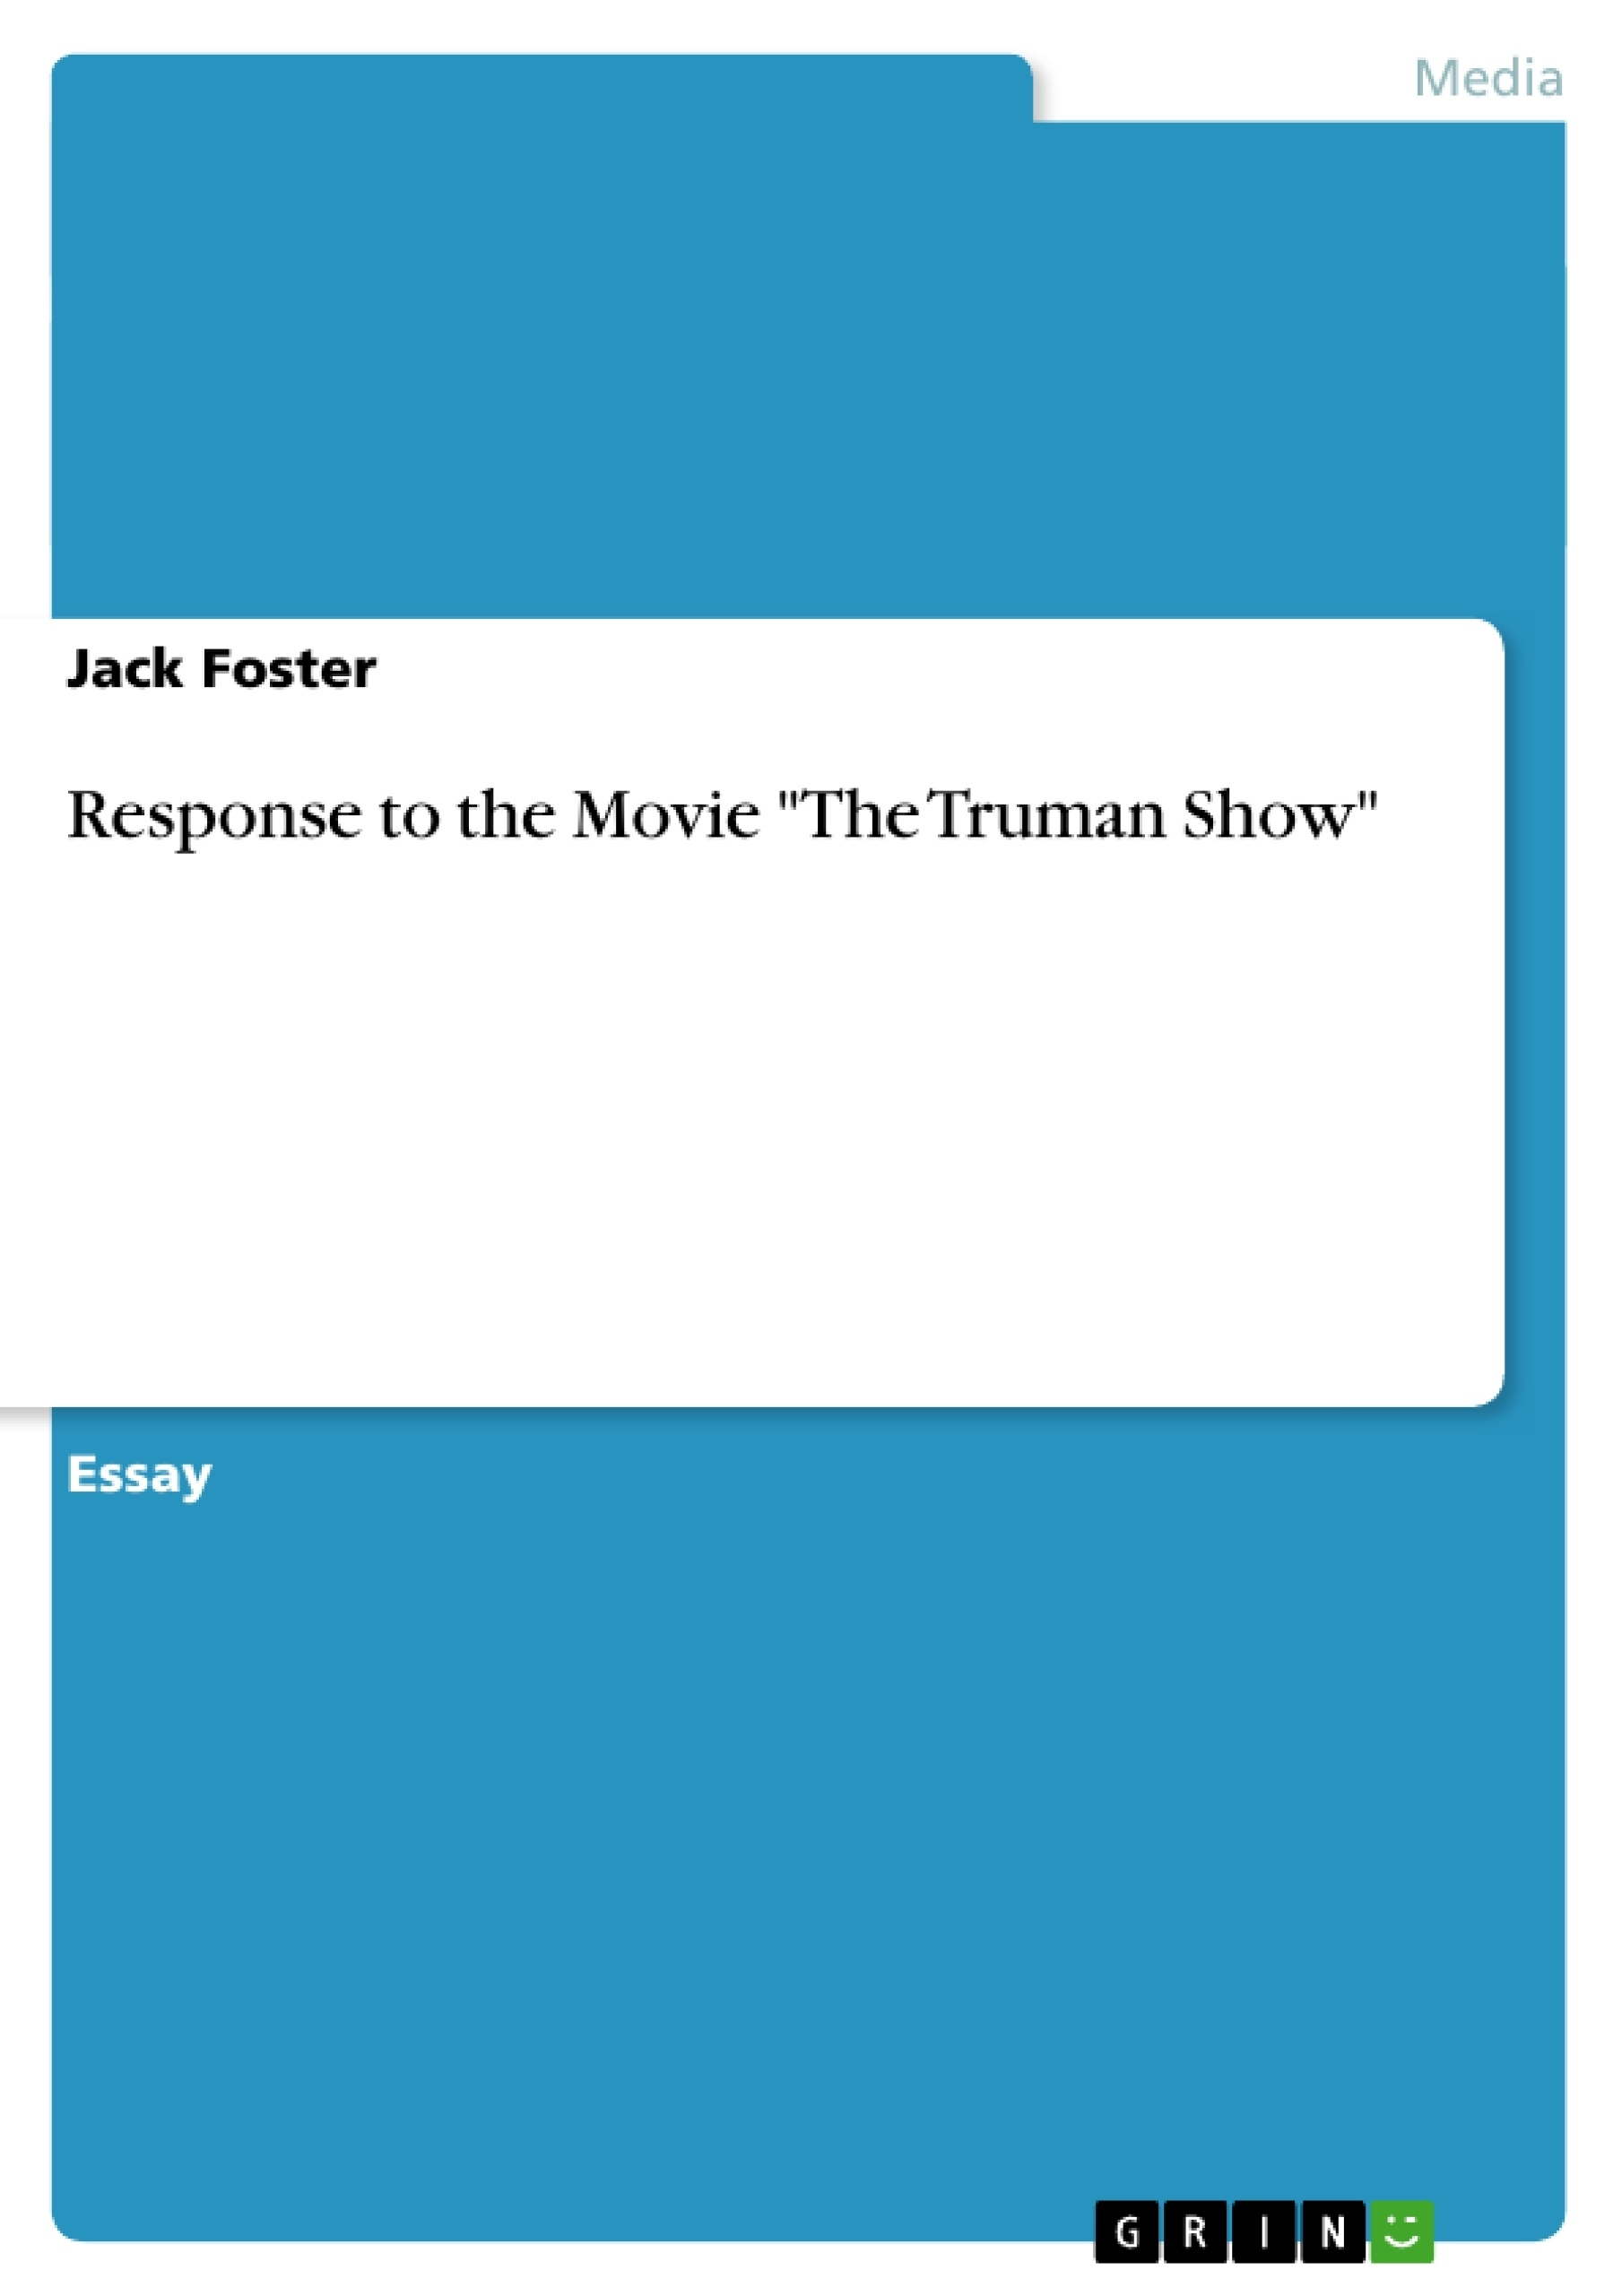 response to the movie the truman show publish your master s response to the movie the truman show publish your master s thesis bachelor s thesis essay or term paper